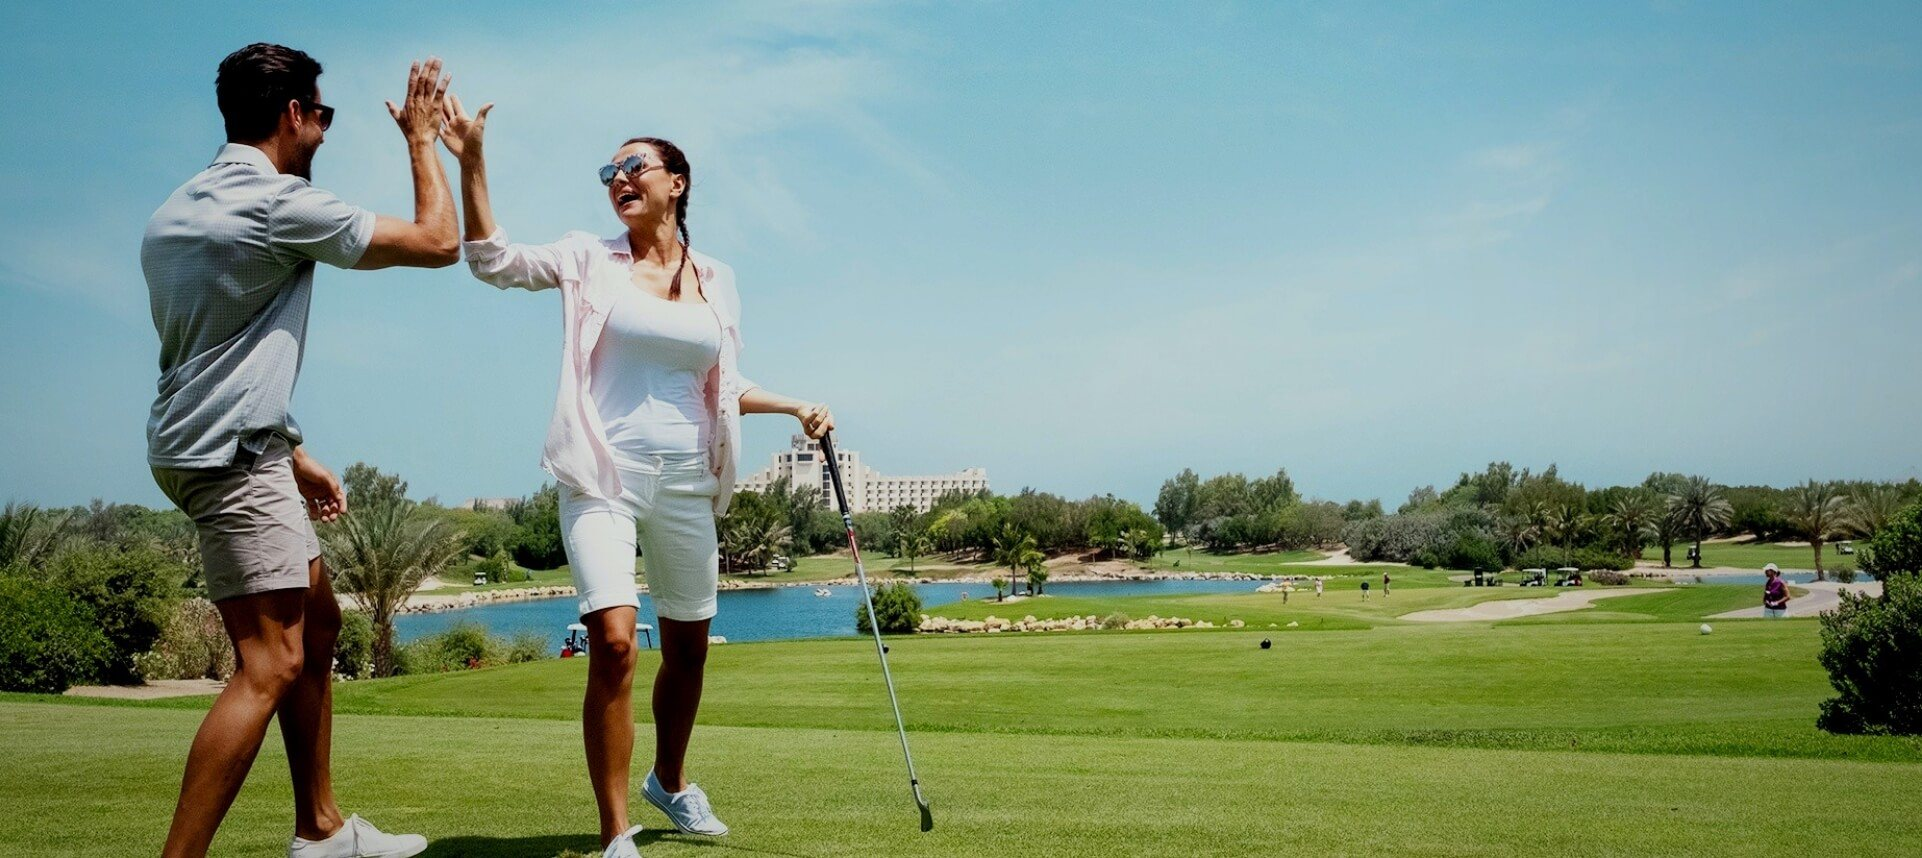 Couple Celebrating on Golf Course